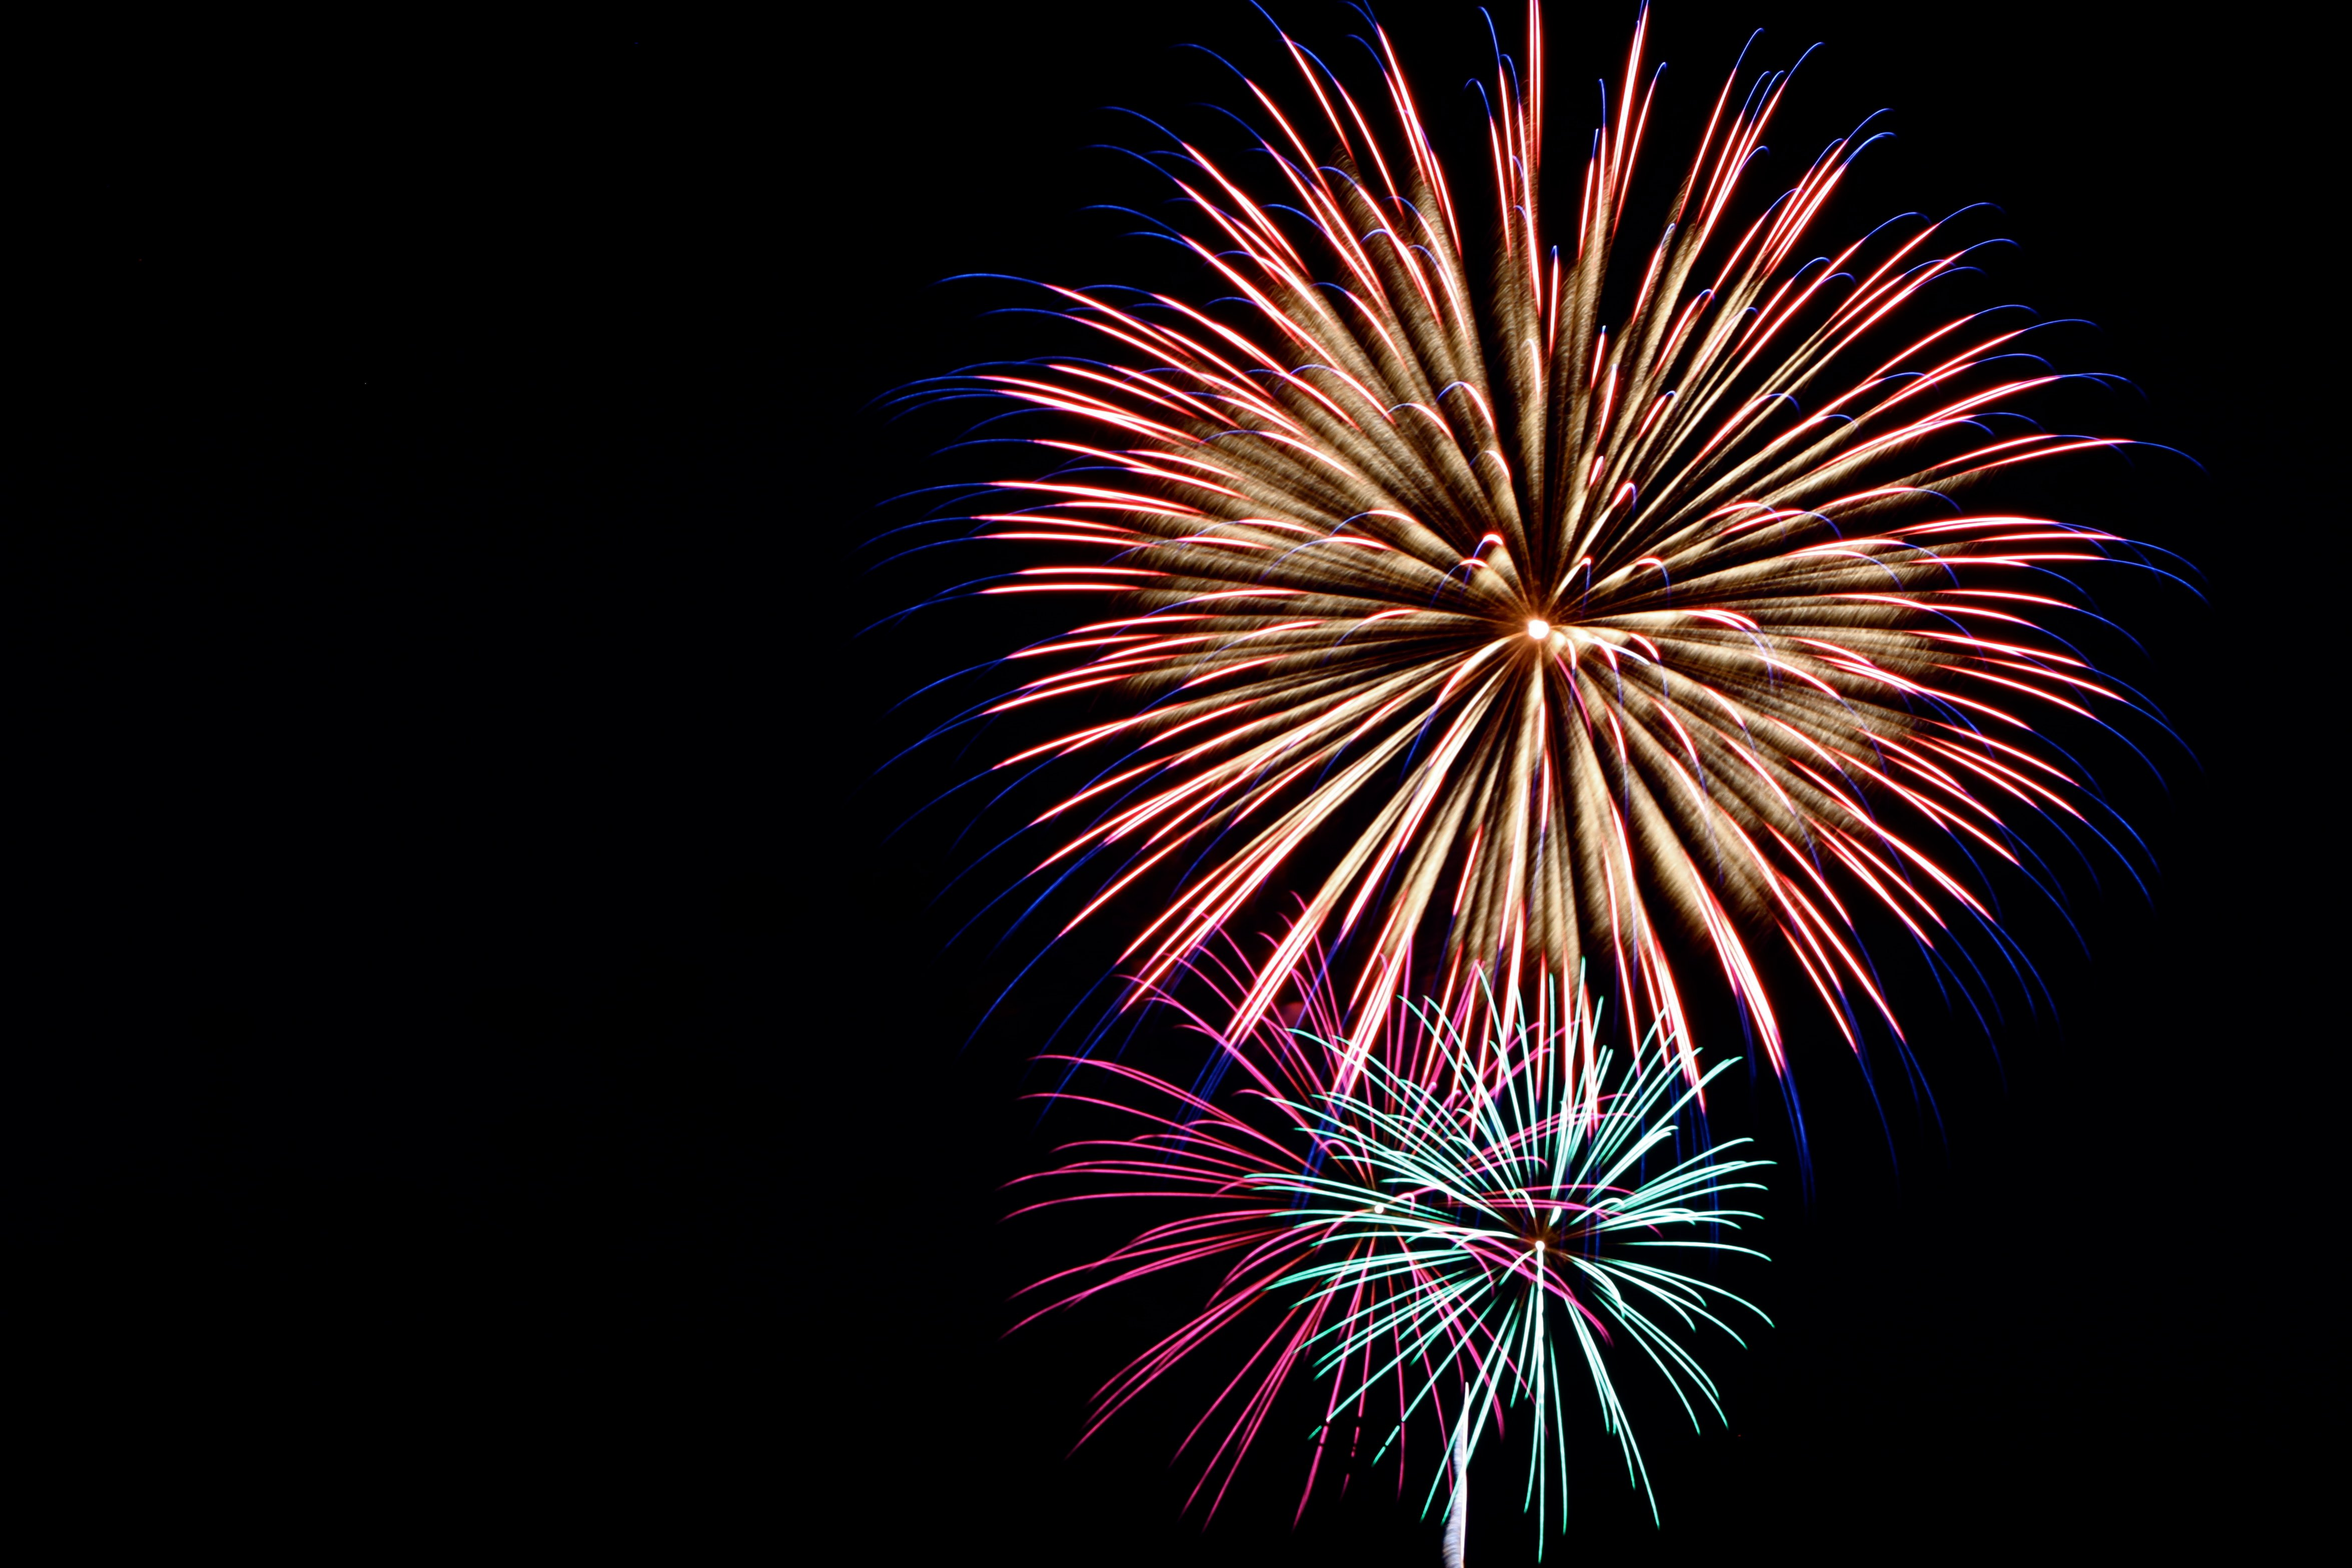 Fireworks Wallpaper (64 Wallpapers) – HD Wallpapers